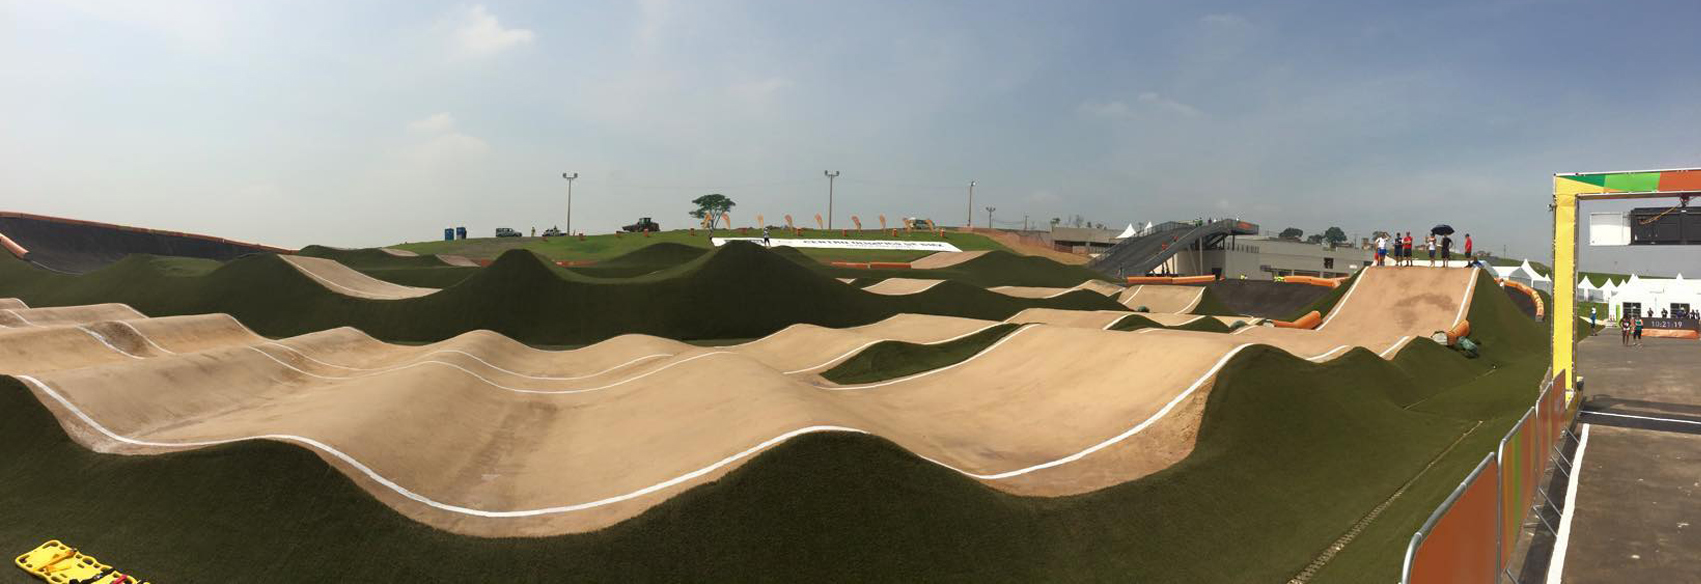 Olympic Test Event Track Image